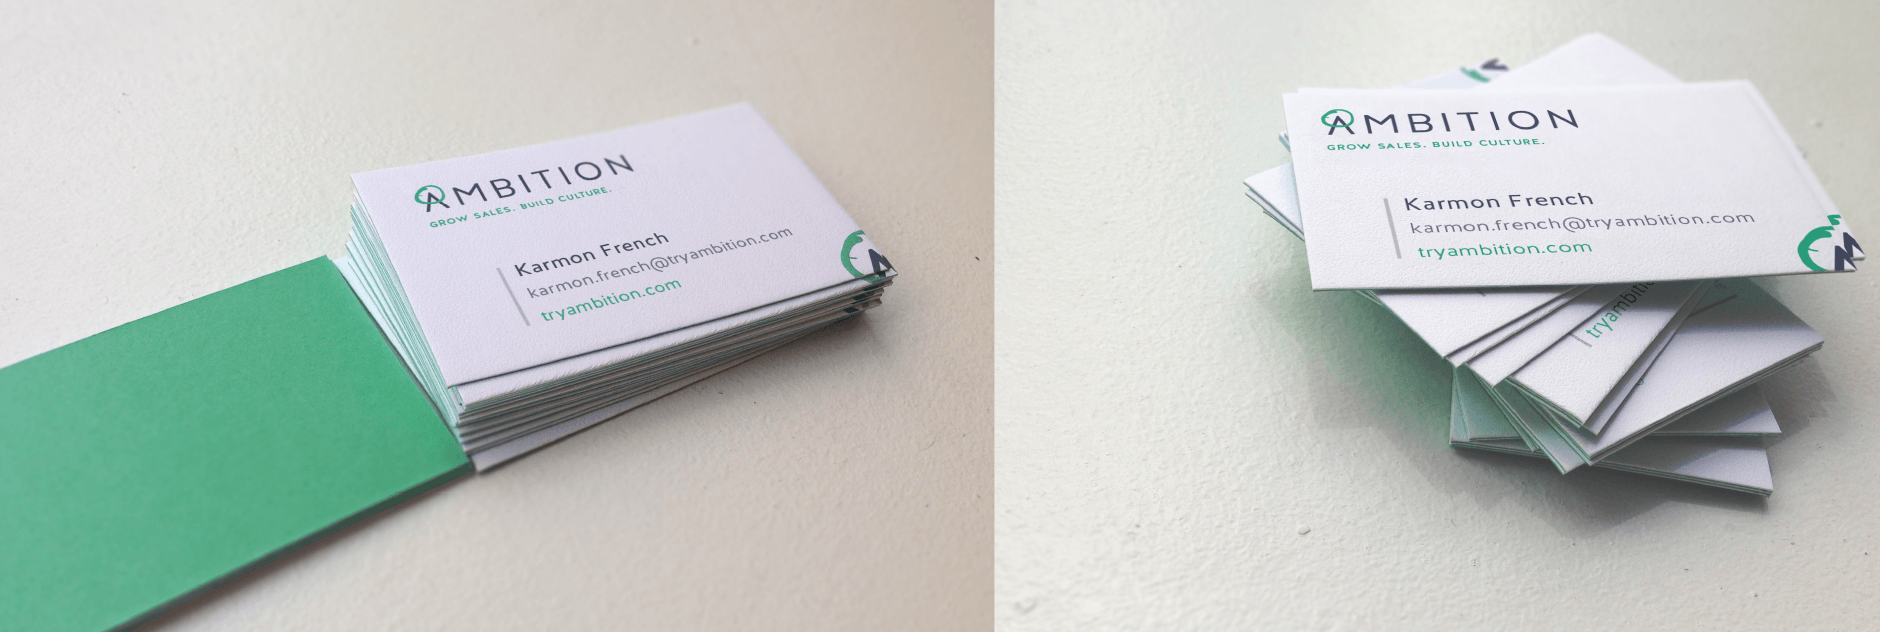 Ambition business cards